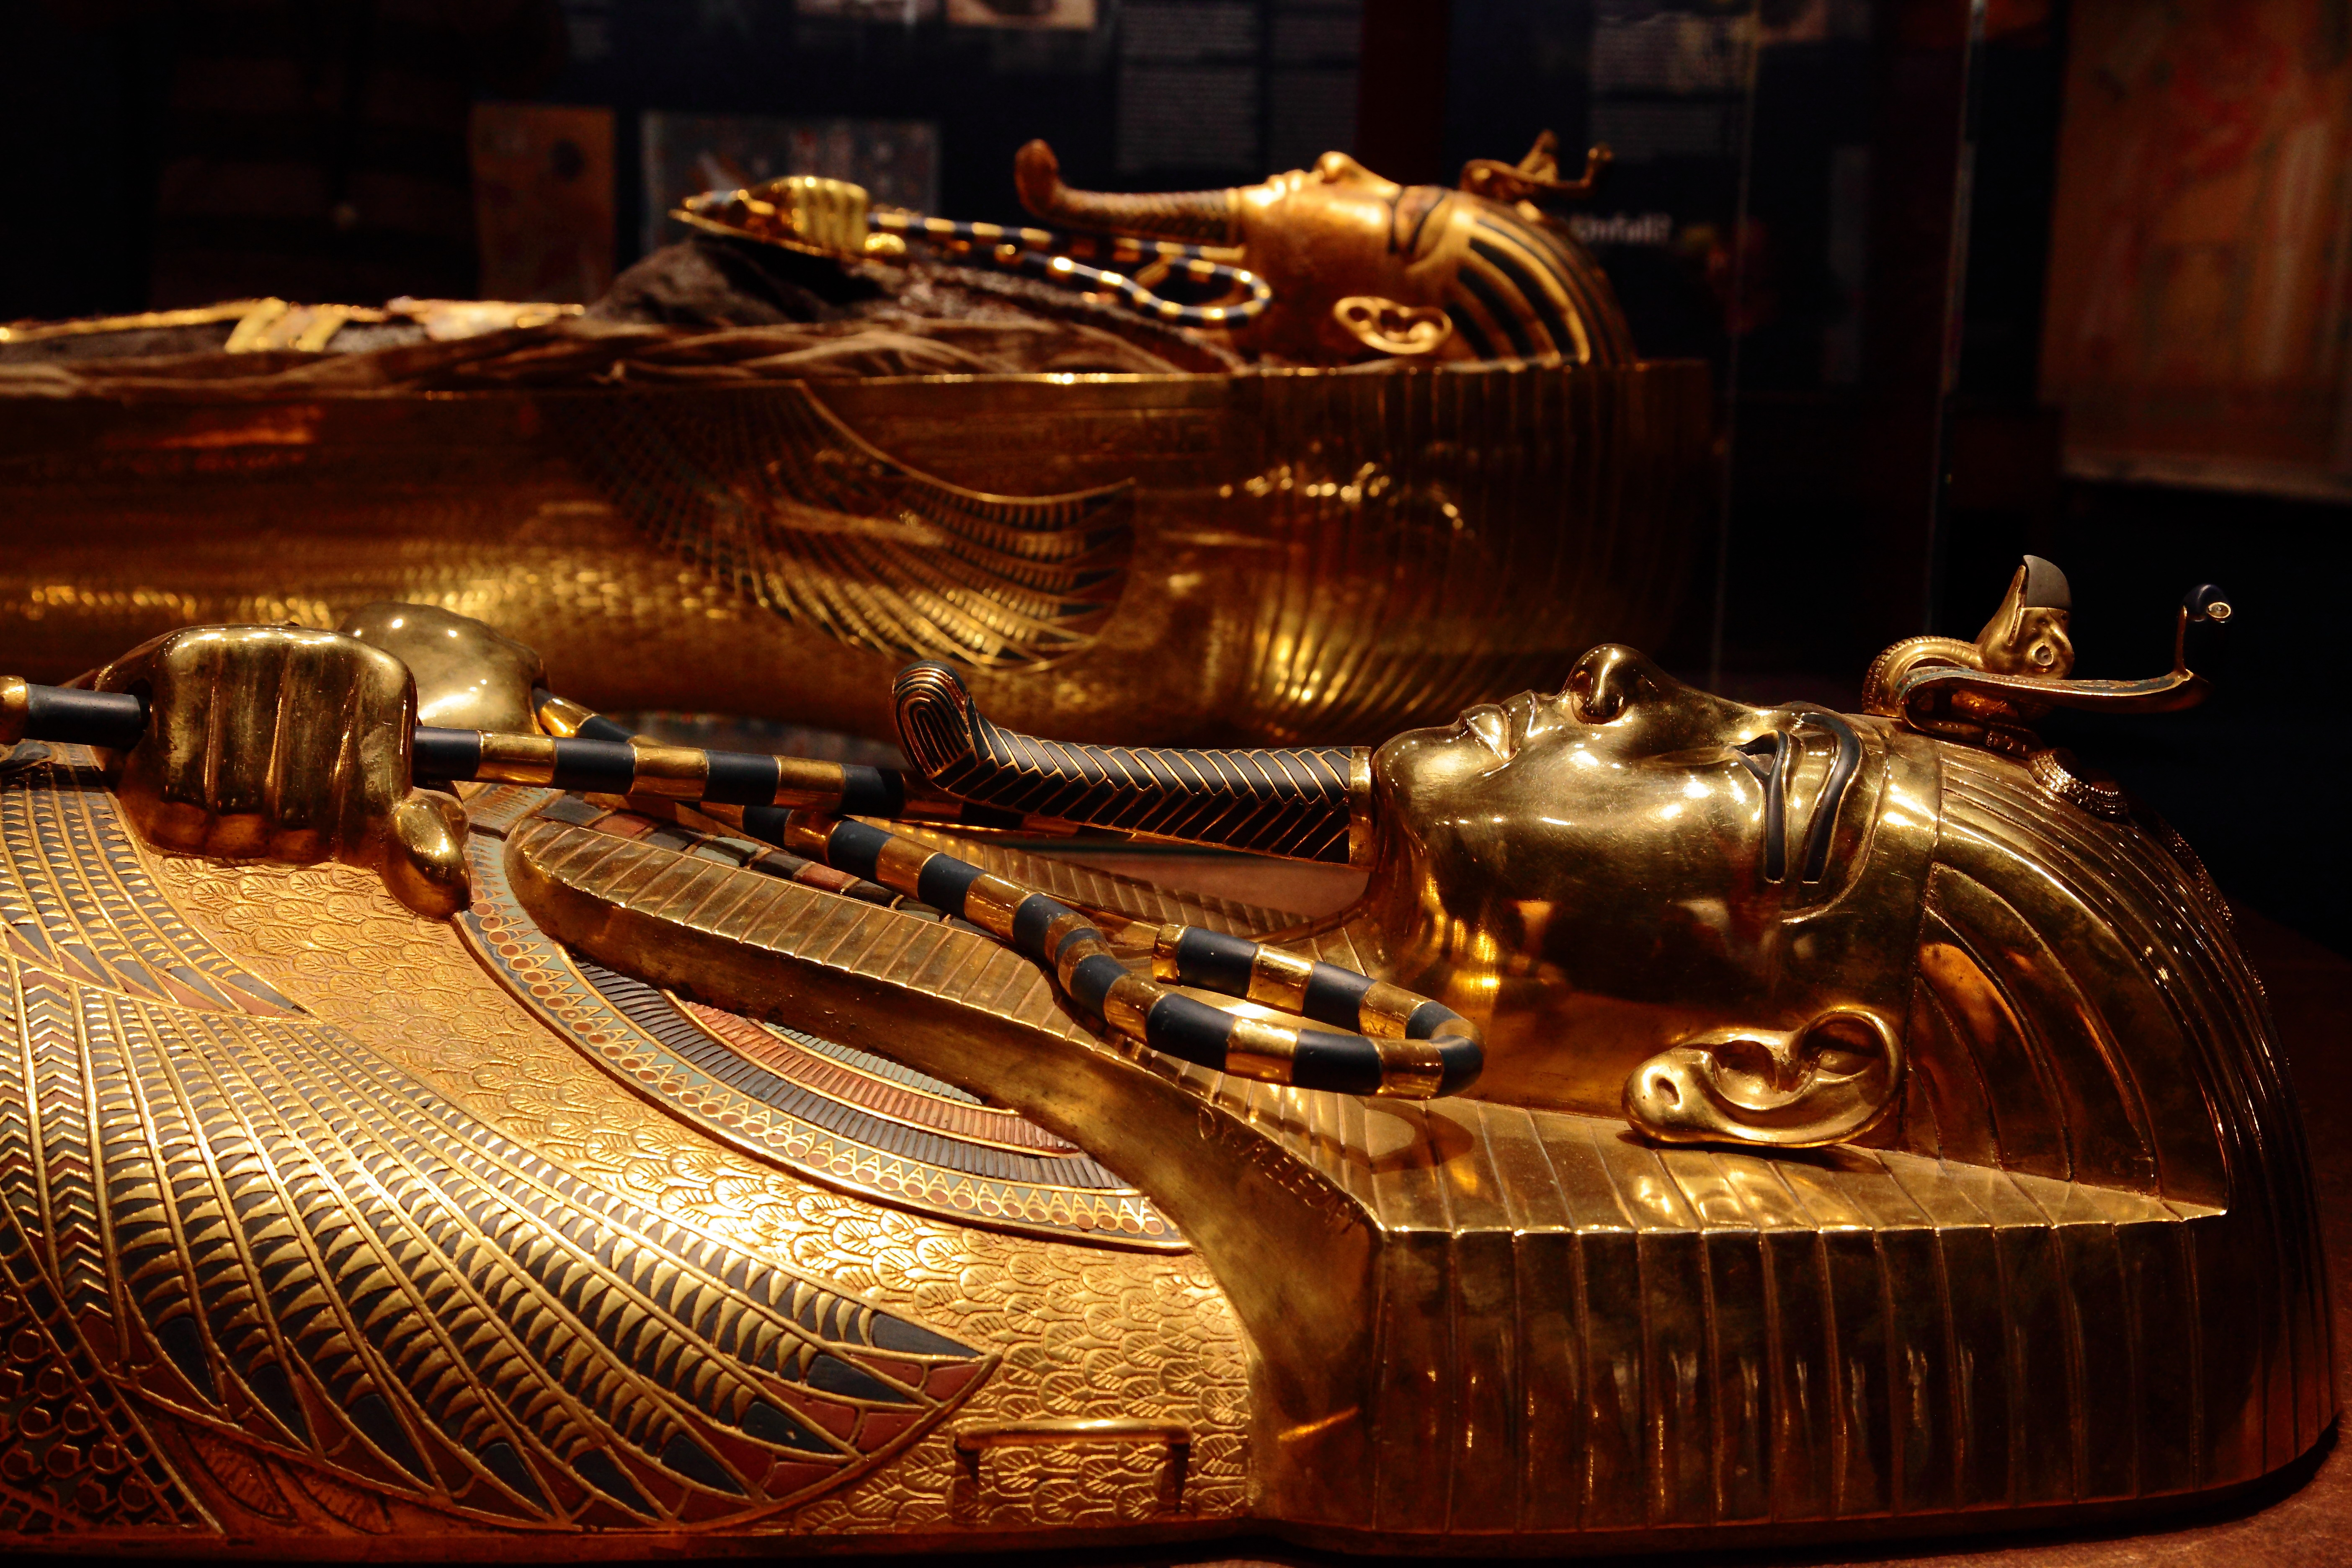 king-tut-golden-mummy-cases-01